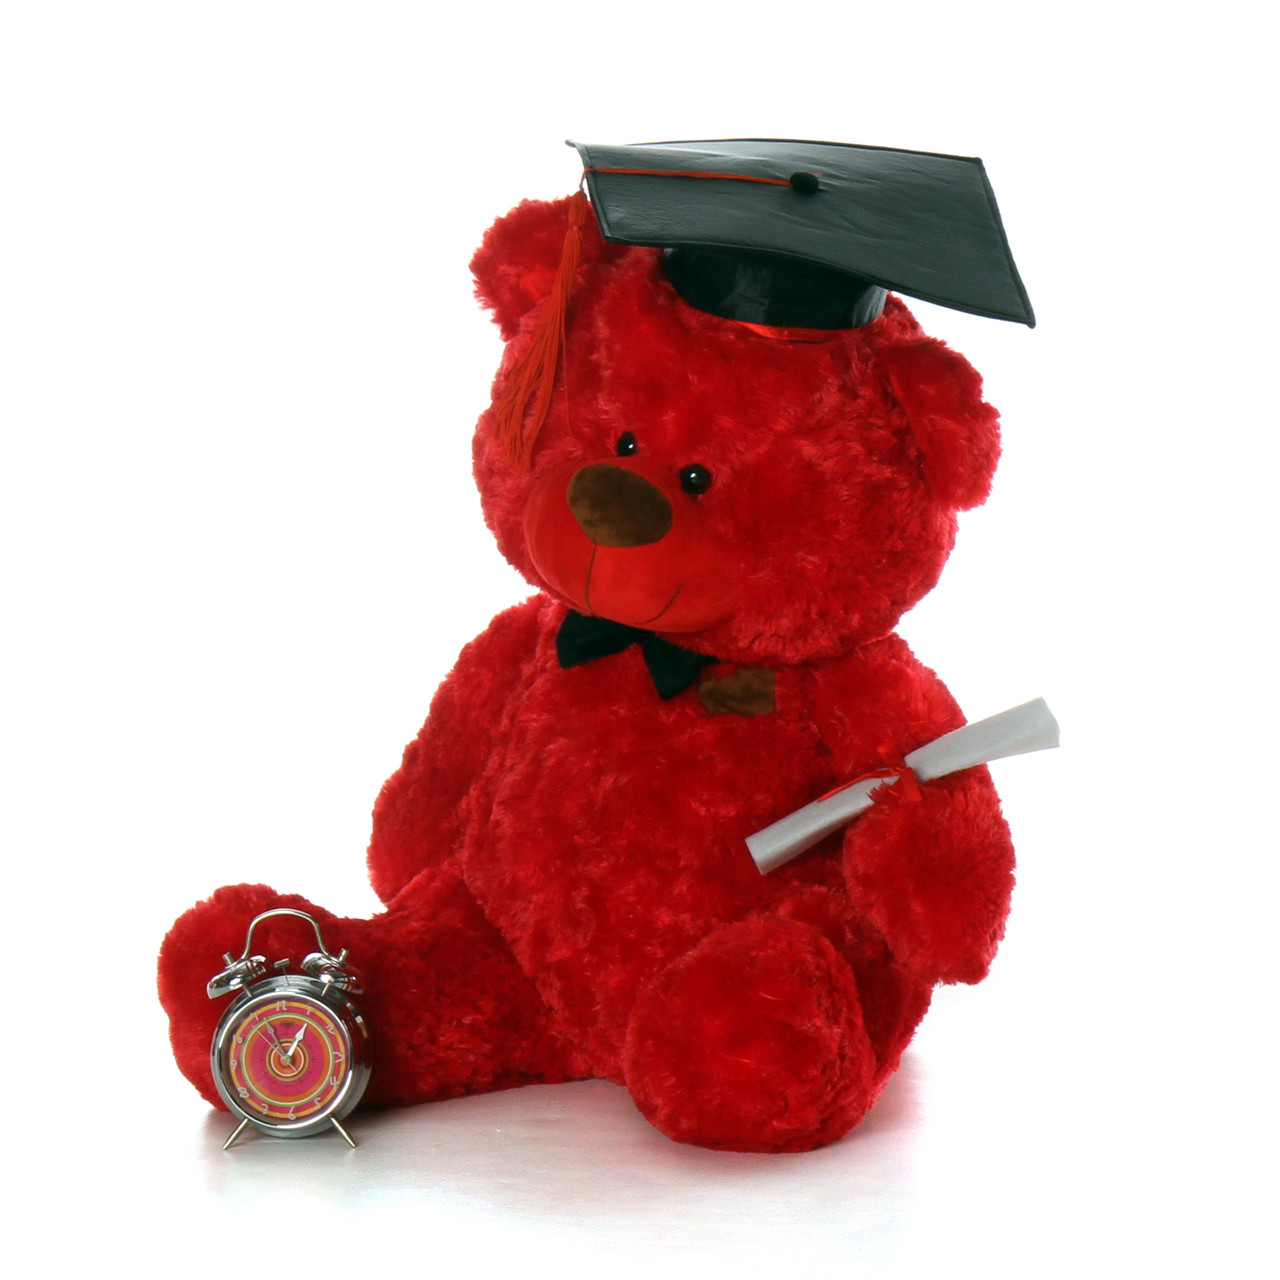 3ft Red Graduation Teddy Bear with Cap, Diploma and Bow Tie